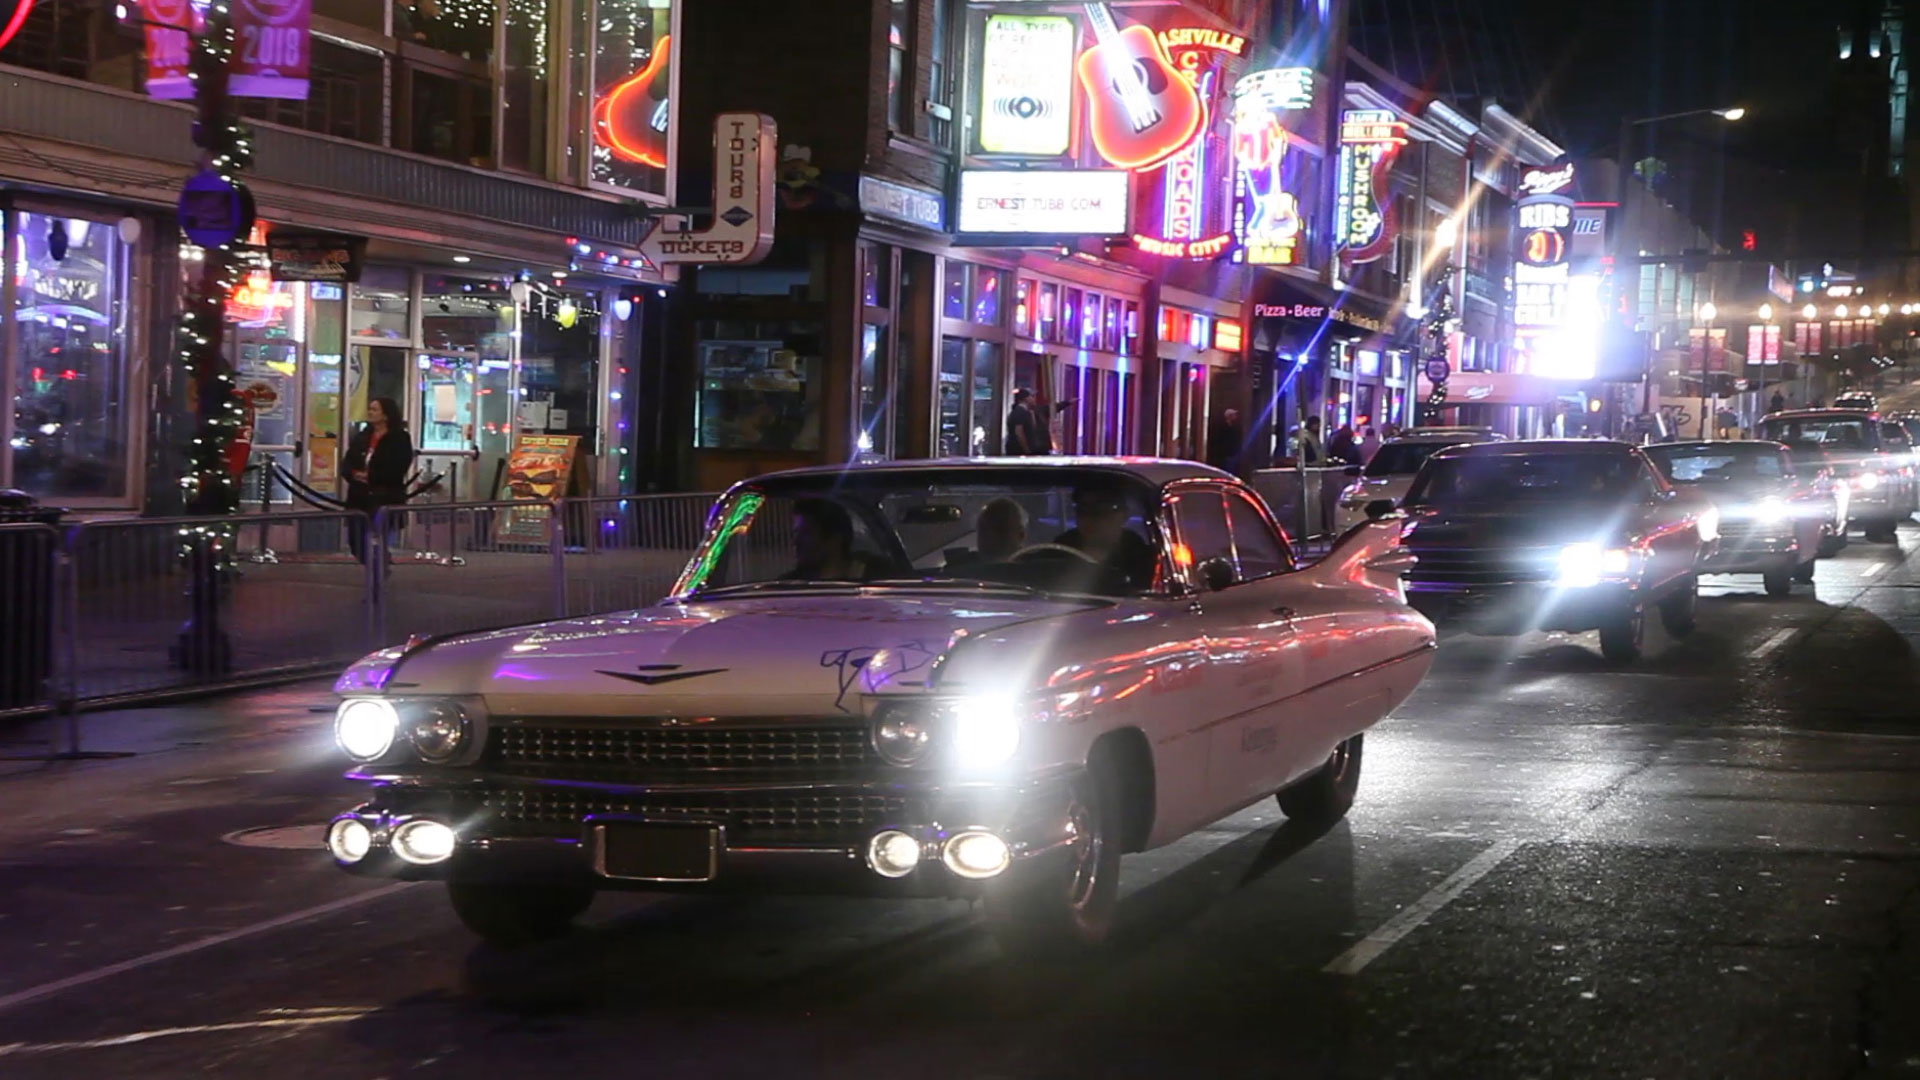 1959 Cadillac Coupe de Ville cruising Nashville's Music Row